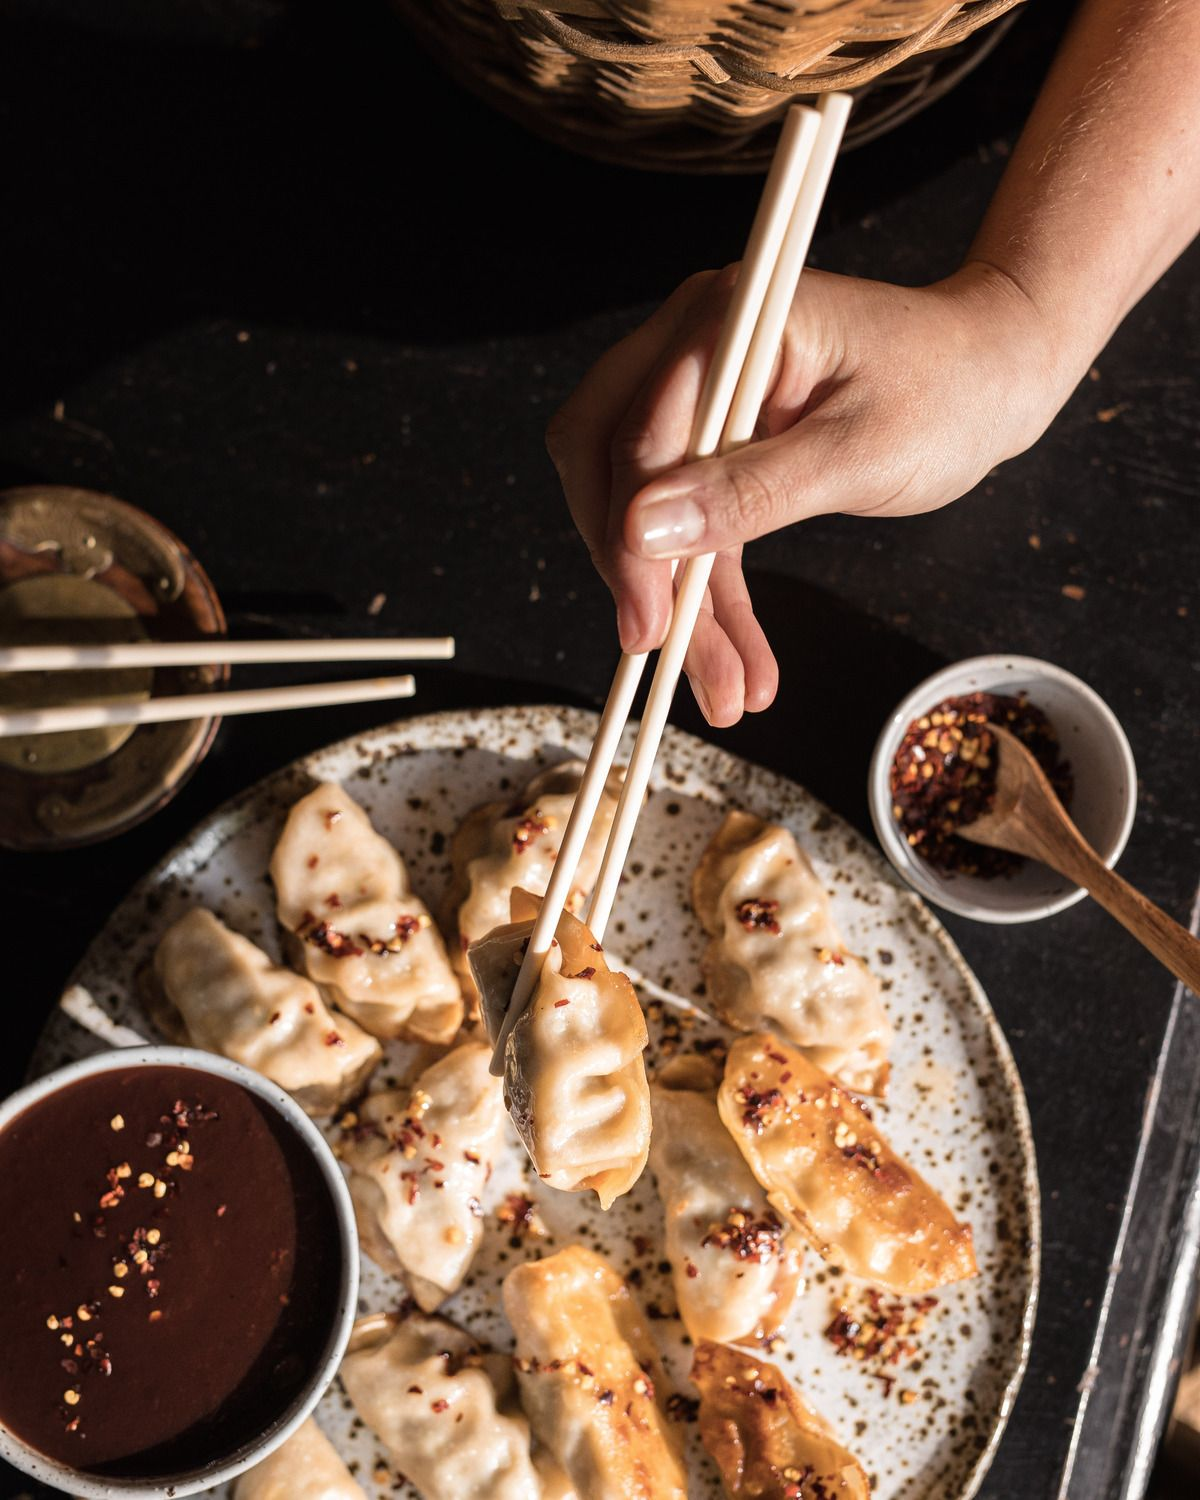 Chopsticks picking up dumplings, about to dip into Chinese Plum Sauce